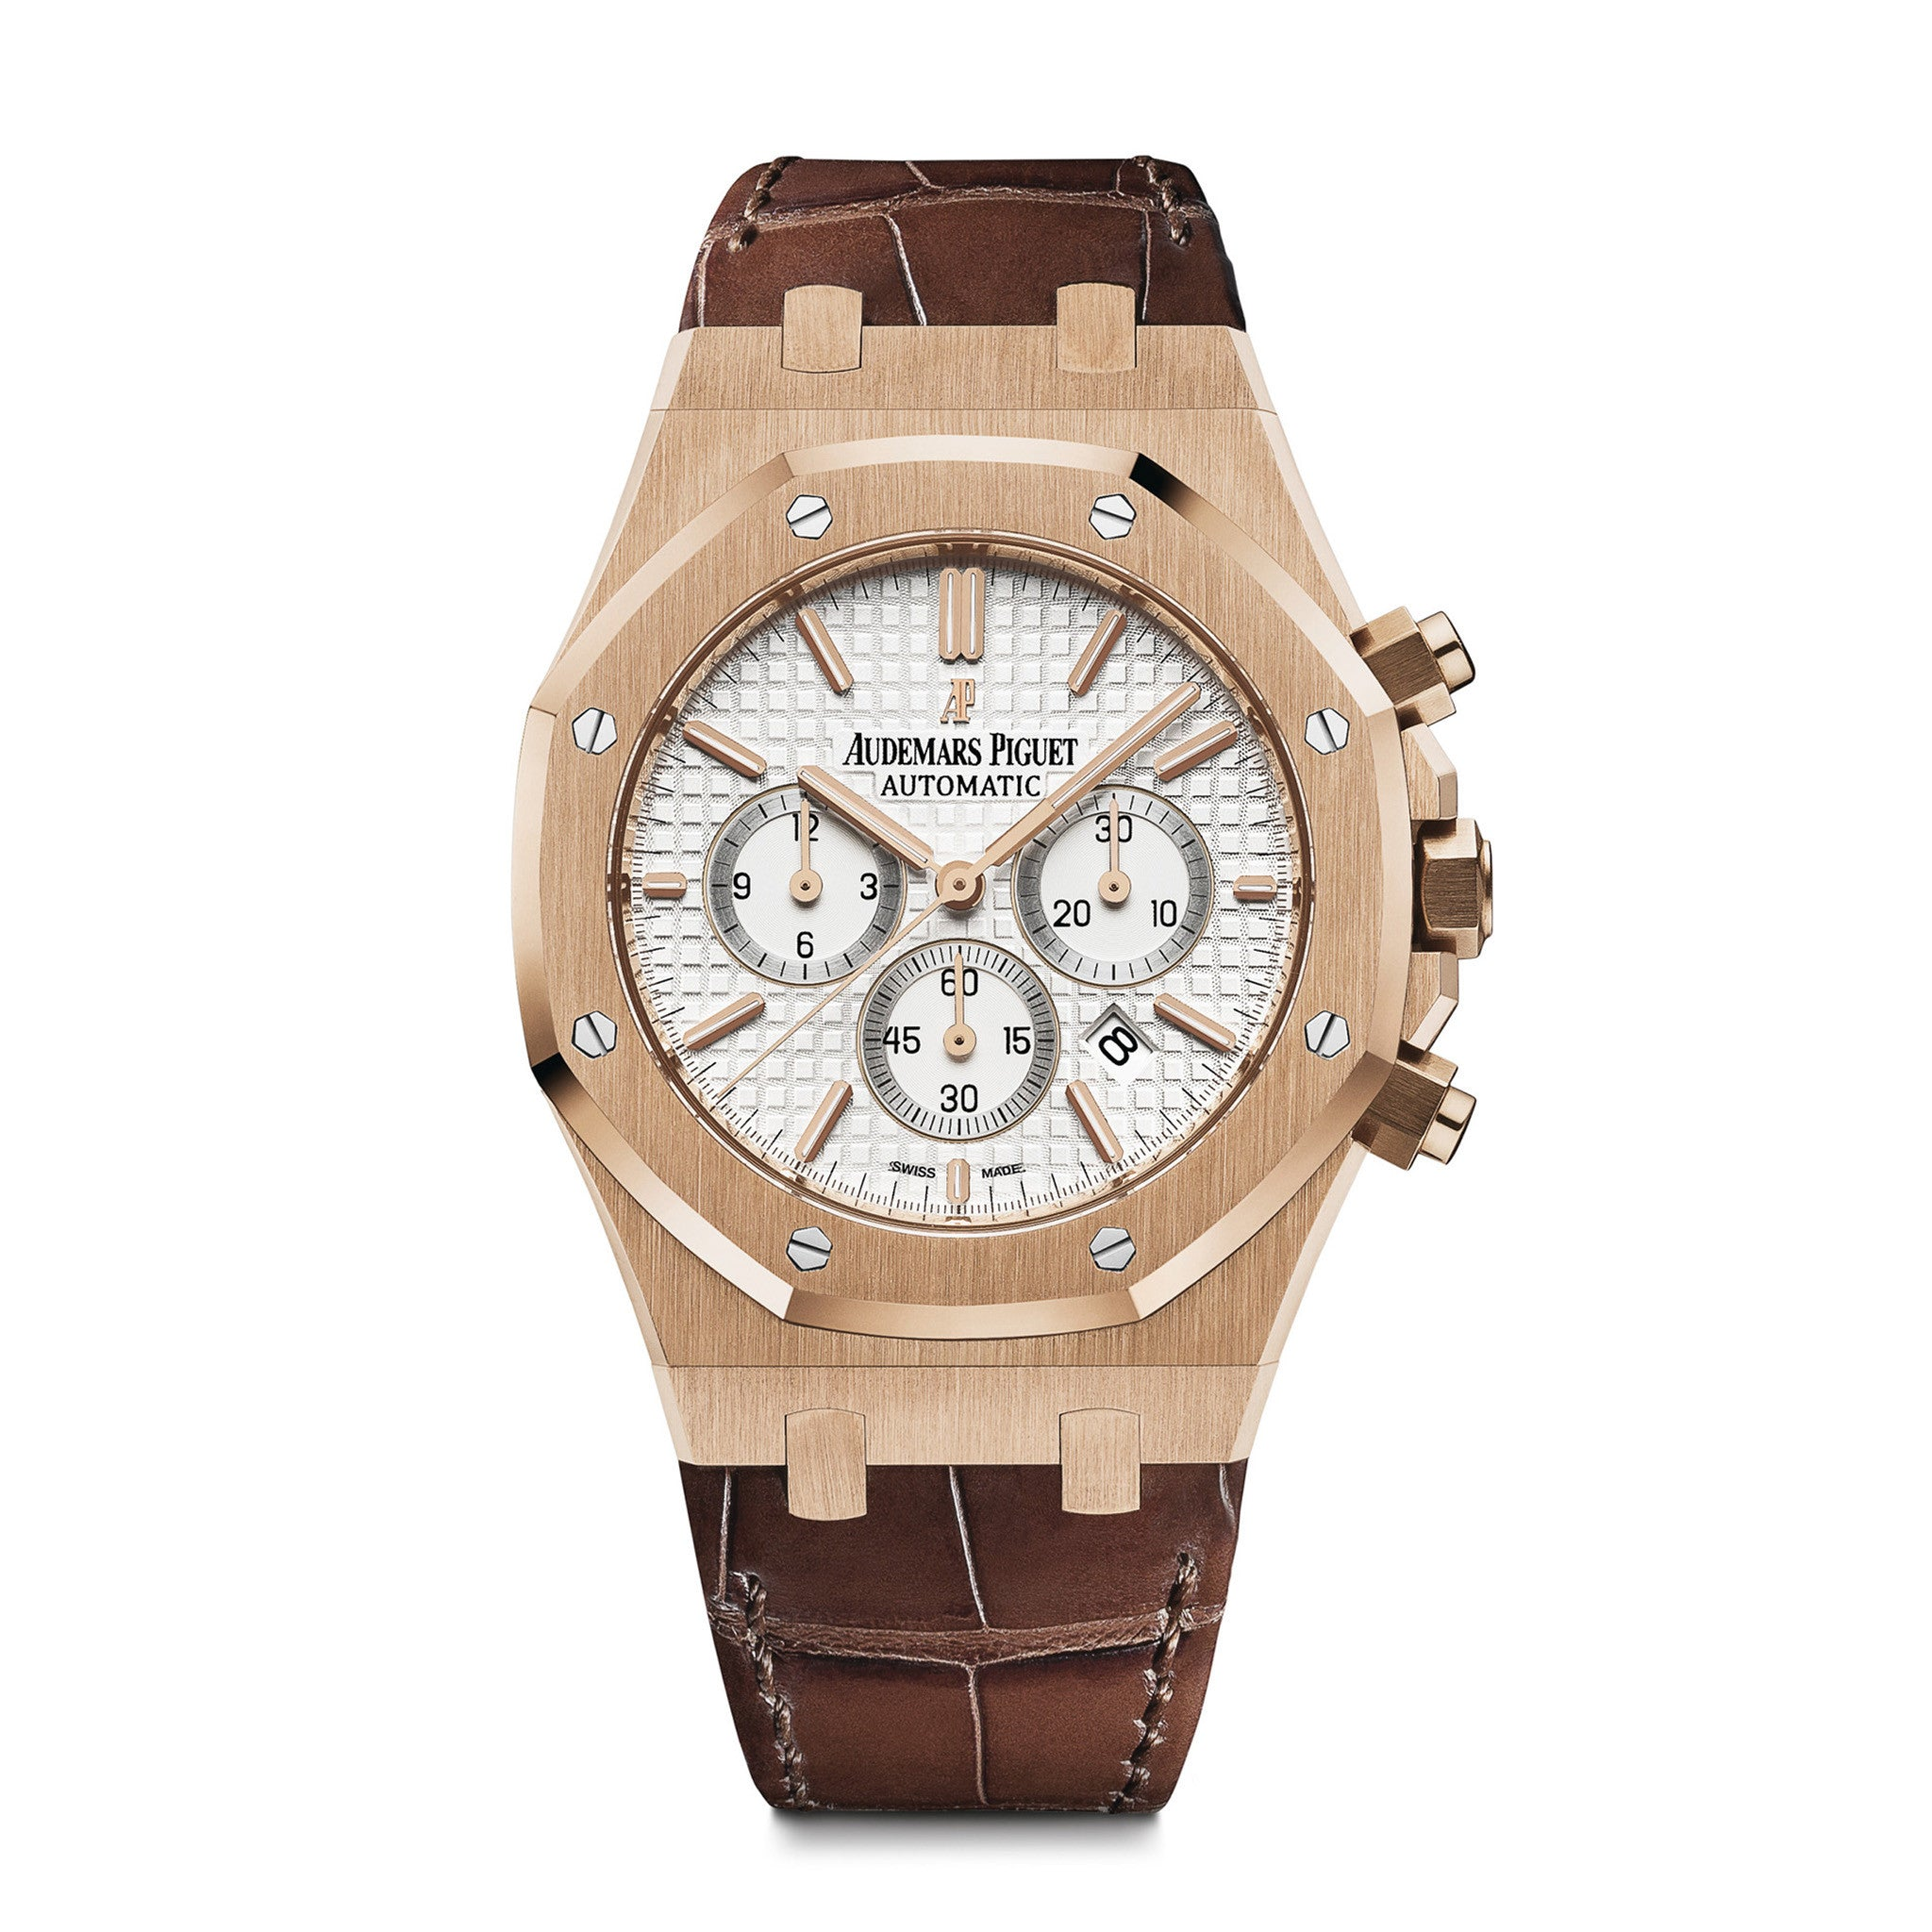 Royal Oak Chronograph 26320OR.OO.D088CR.01 - Audemars Piguet